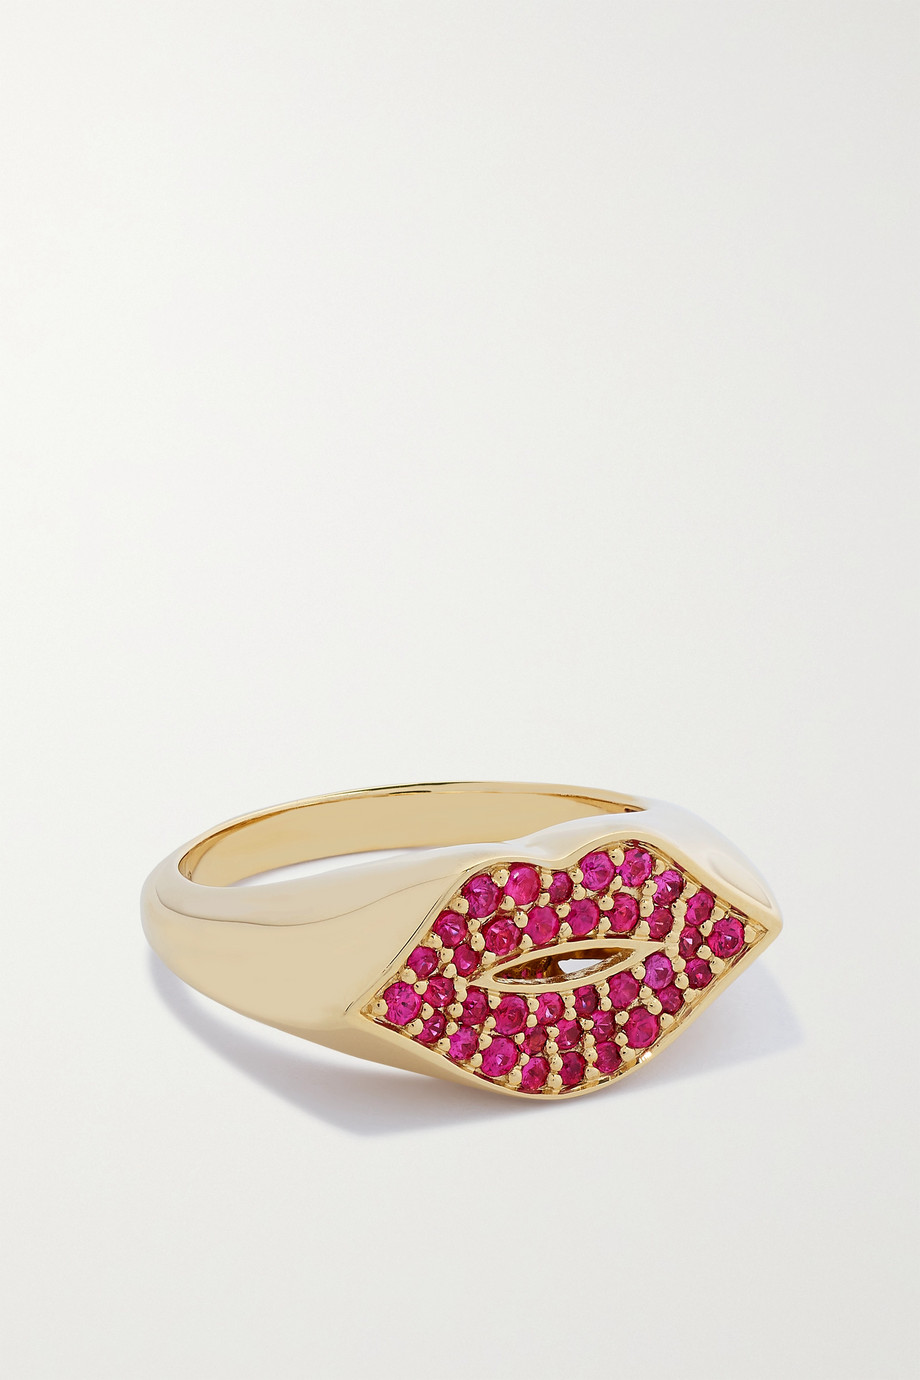 Sydney Evan Lips 14-karat gold ruby signet ring